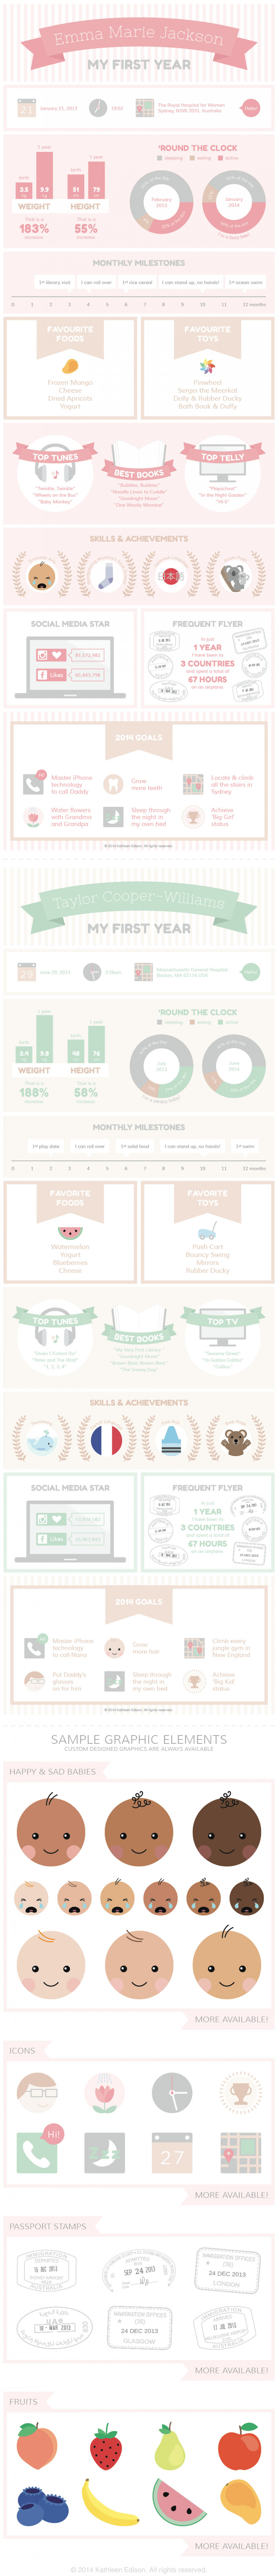 Baby's First Year Infographic